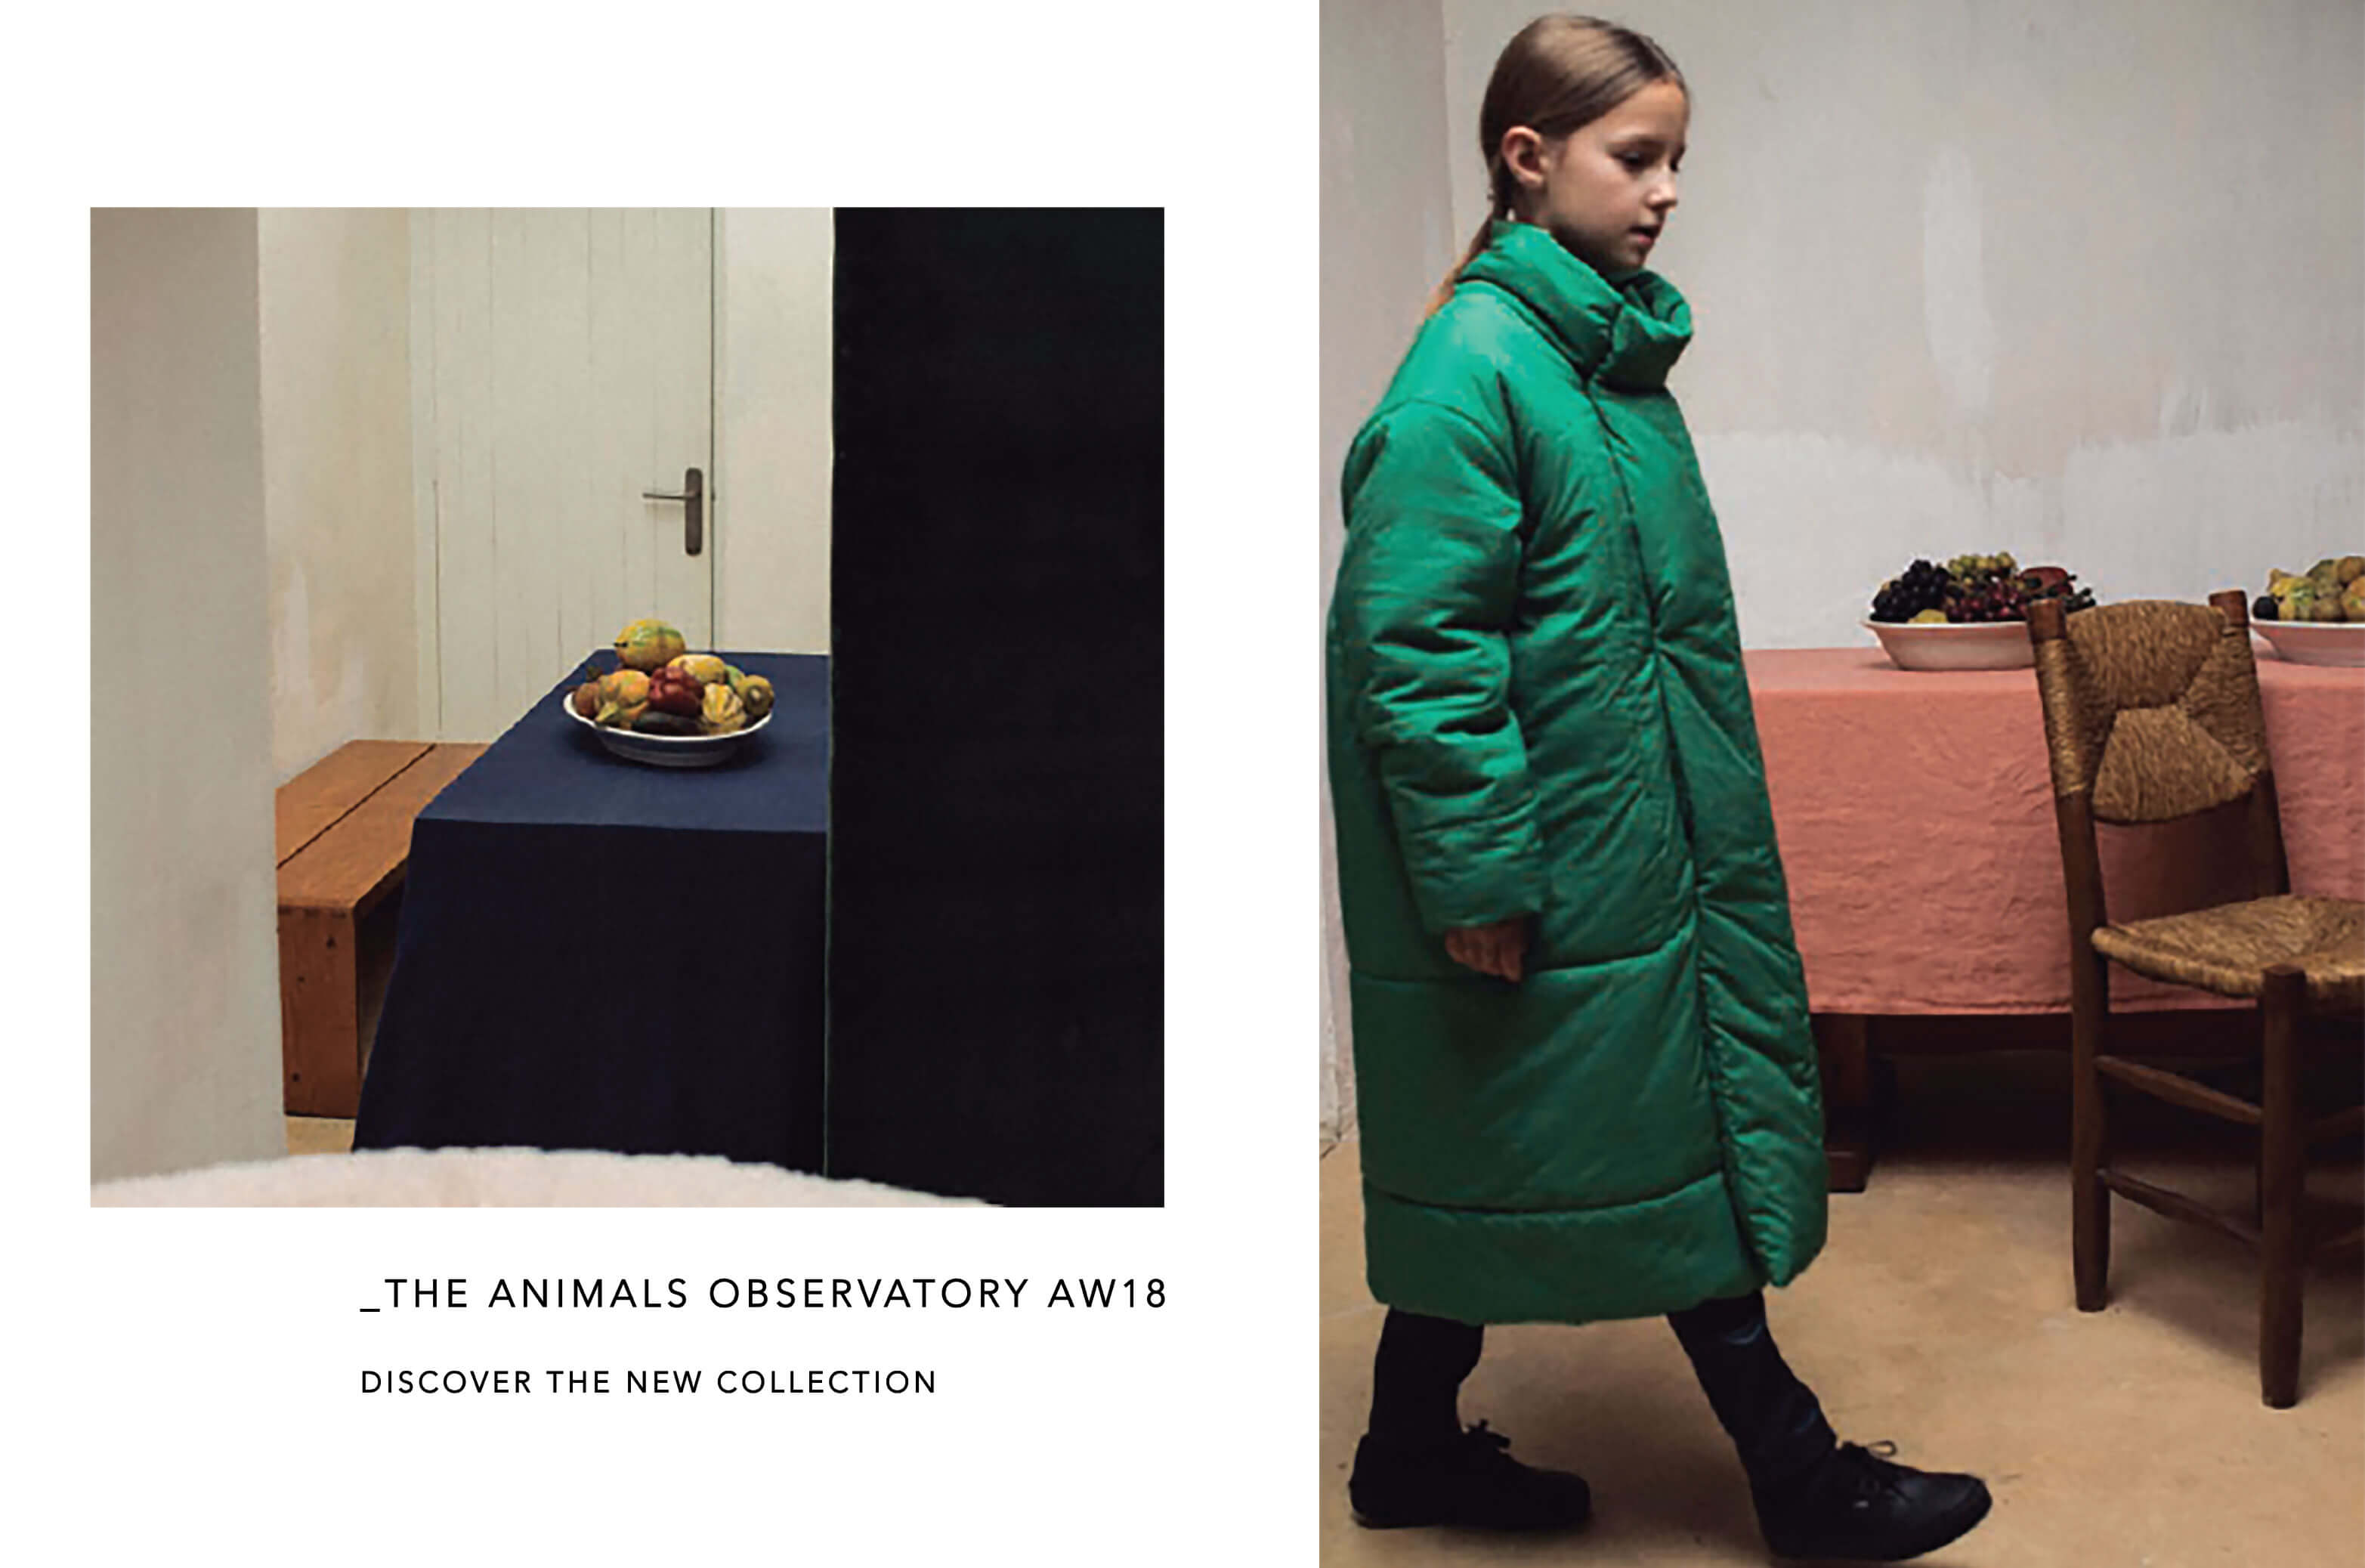 THE ANIMALS OBSERVATORY AUTUMN/WINTER 2018 | BIEN BIEN